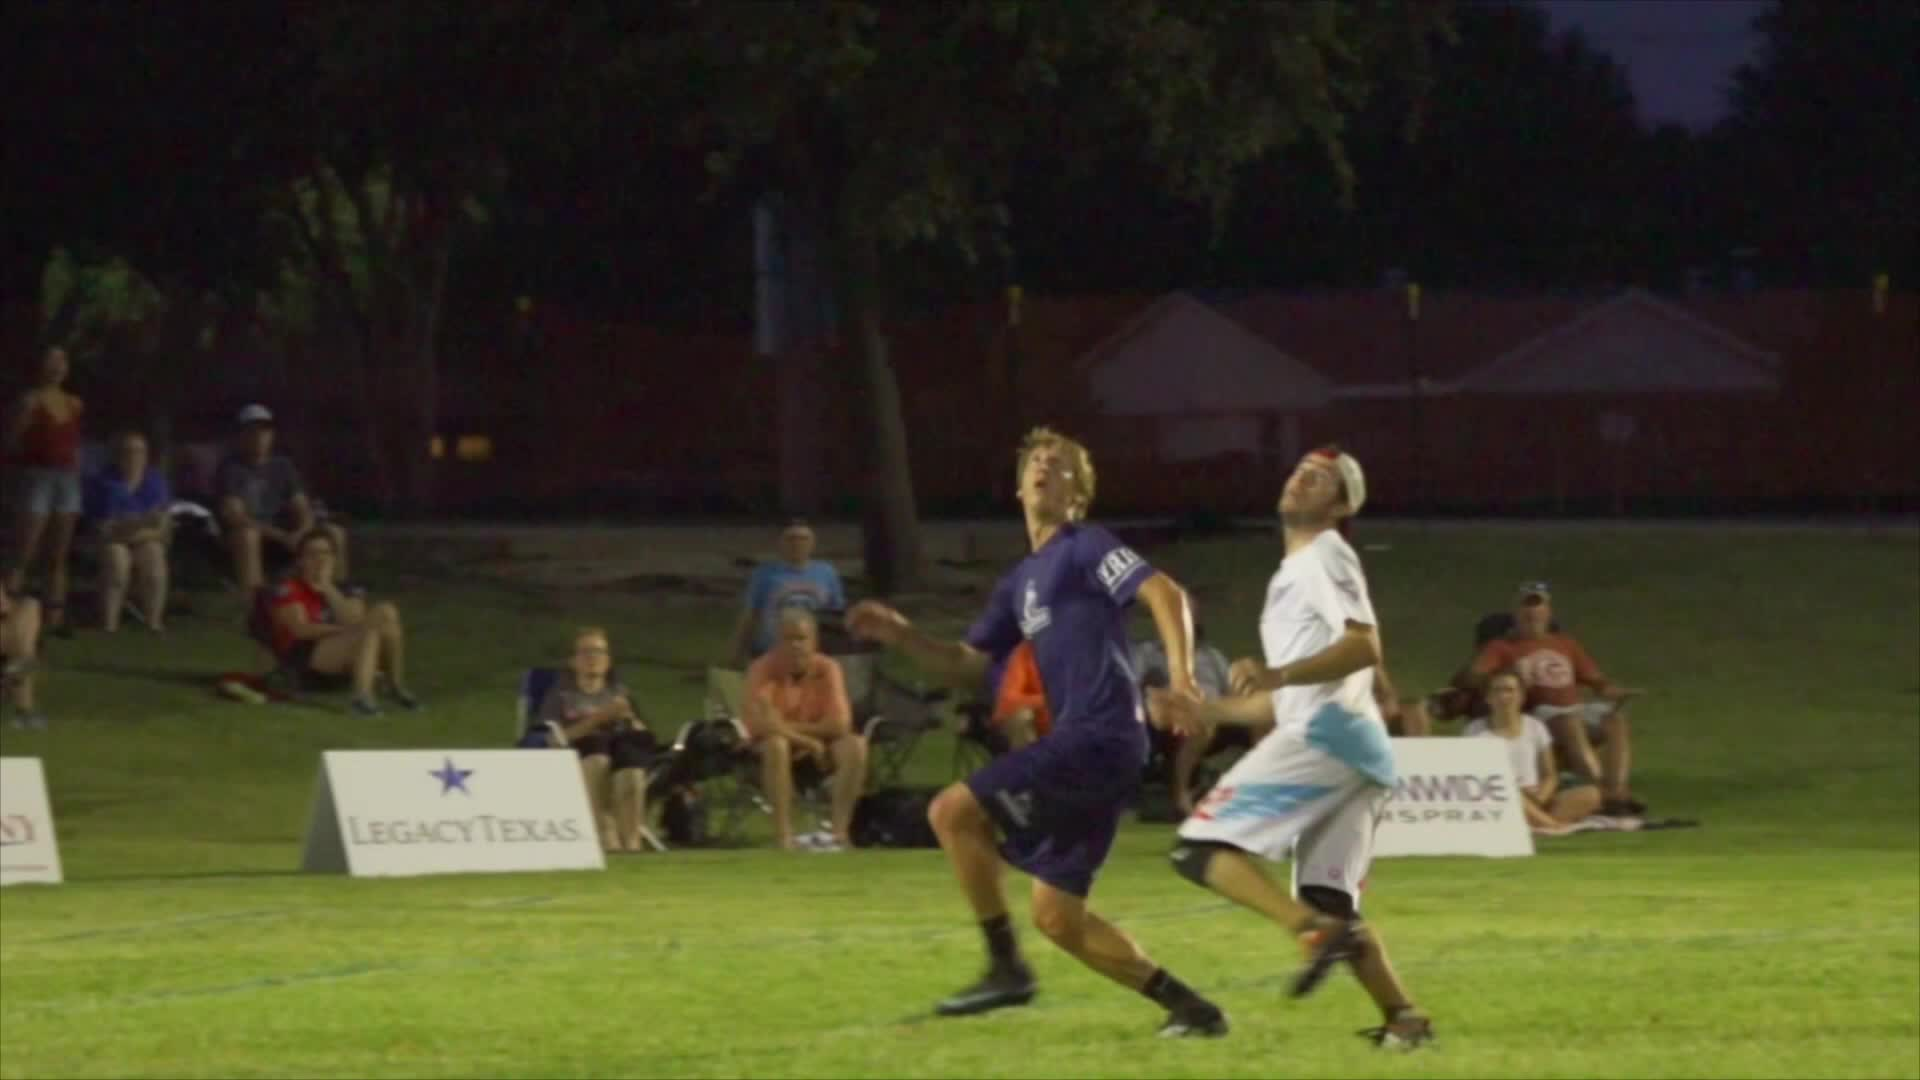 american ultimate disc league, audl, ultimate, ultimate frisbee, Jay Froude Staredown GIFs